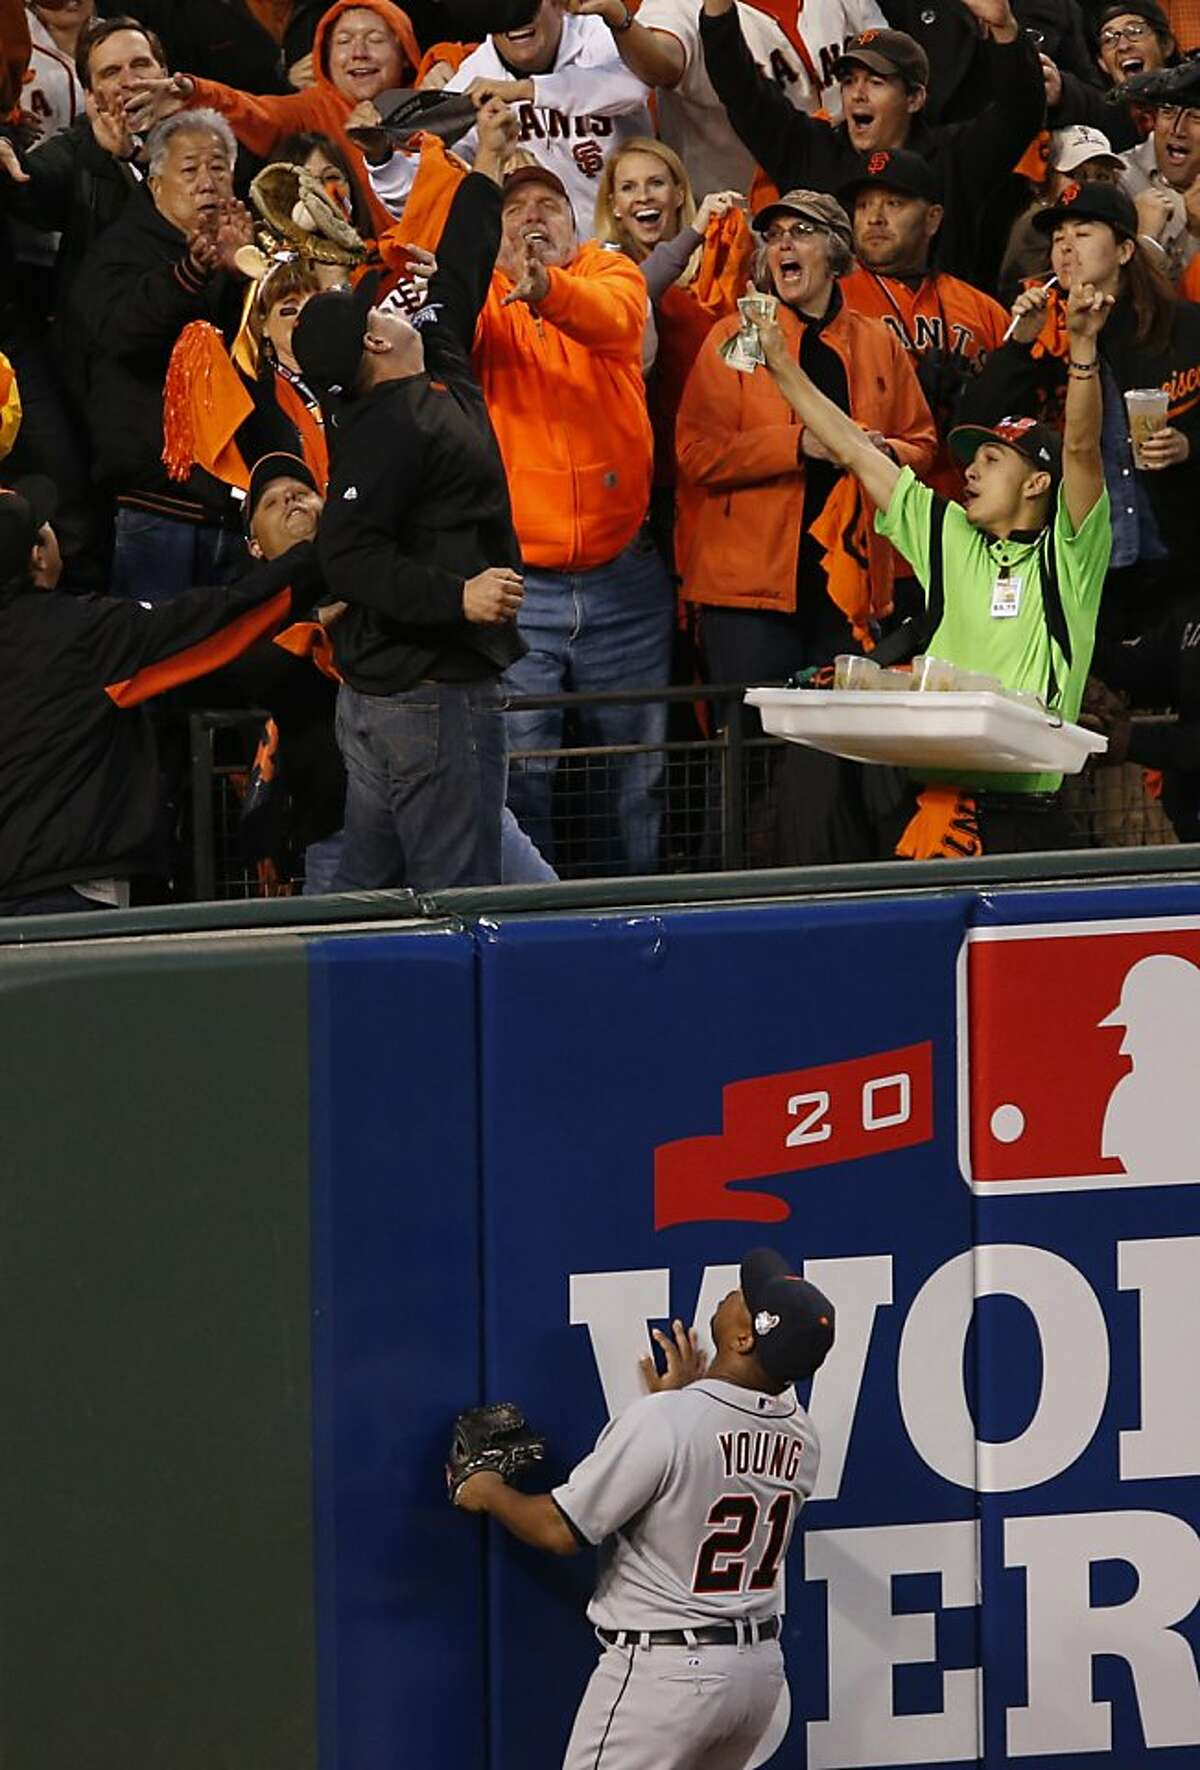 Tigers' left fielder Delmon Young watches Pablo Sandoval's third inning homer during Game 1 of the World Series at AT&T Park on Wednesday, Oct. 24, 2012 in San Francisco, Calif.